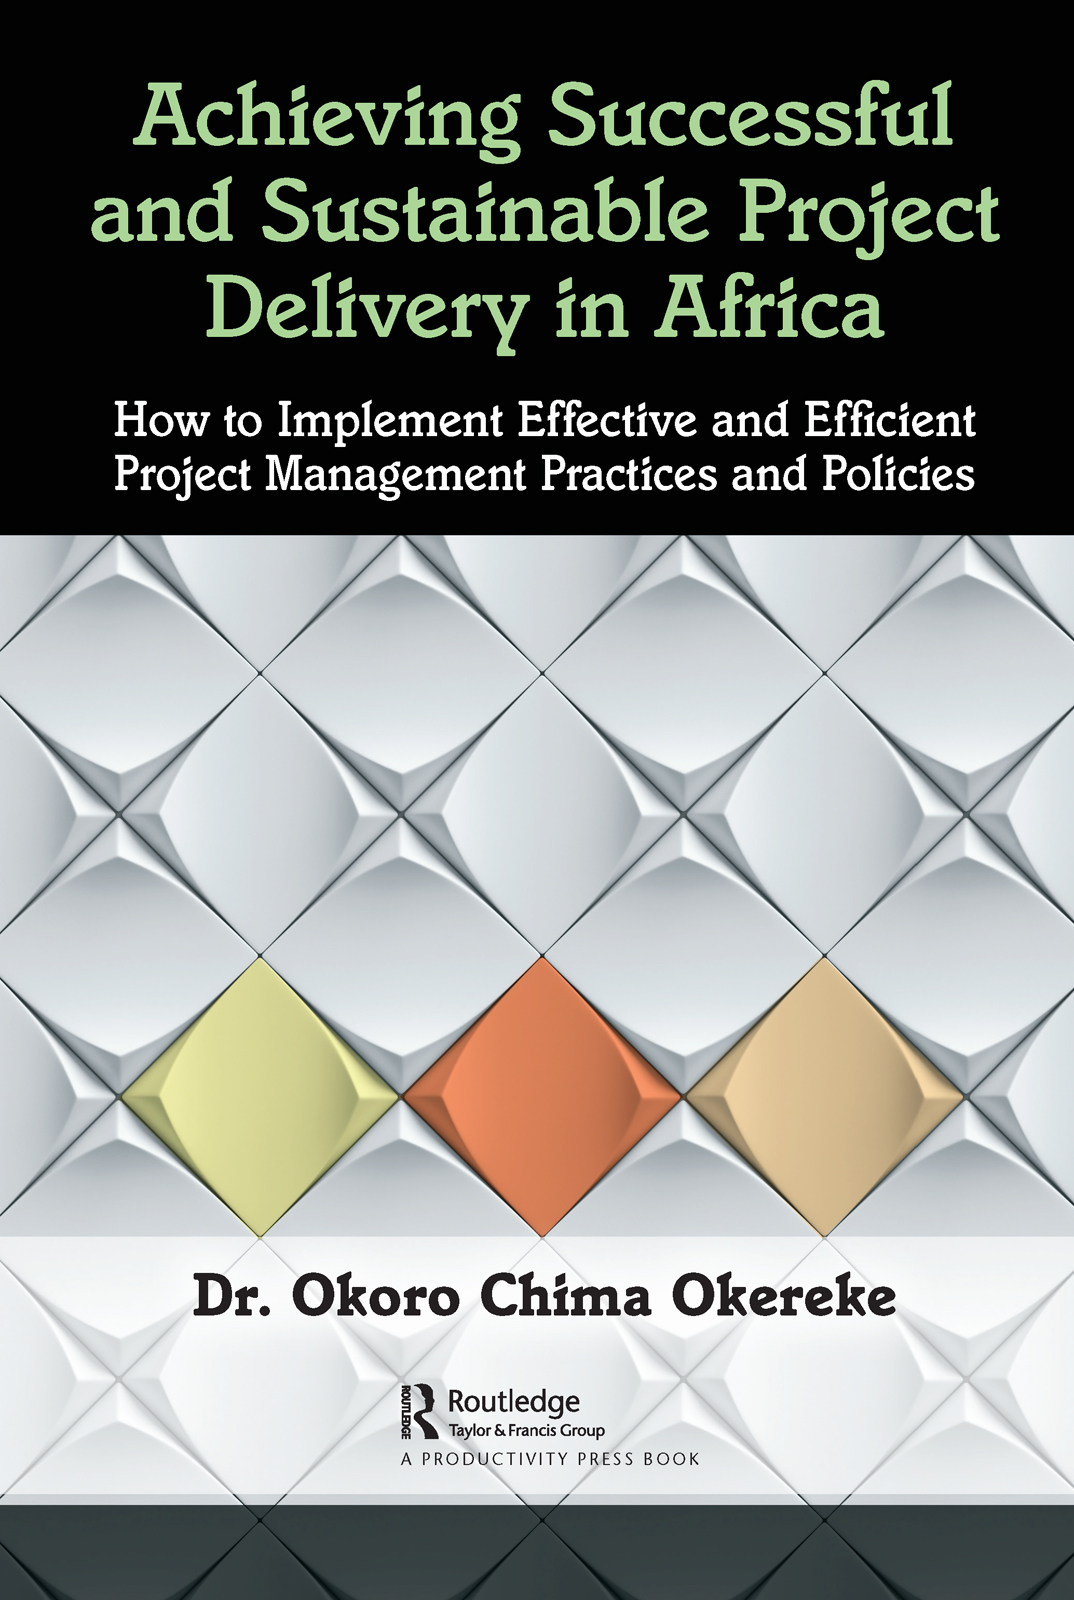 Failed Governance, Majorly Contributory to Failed Projects in Africa